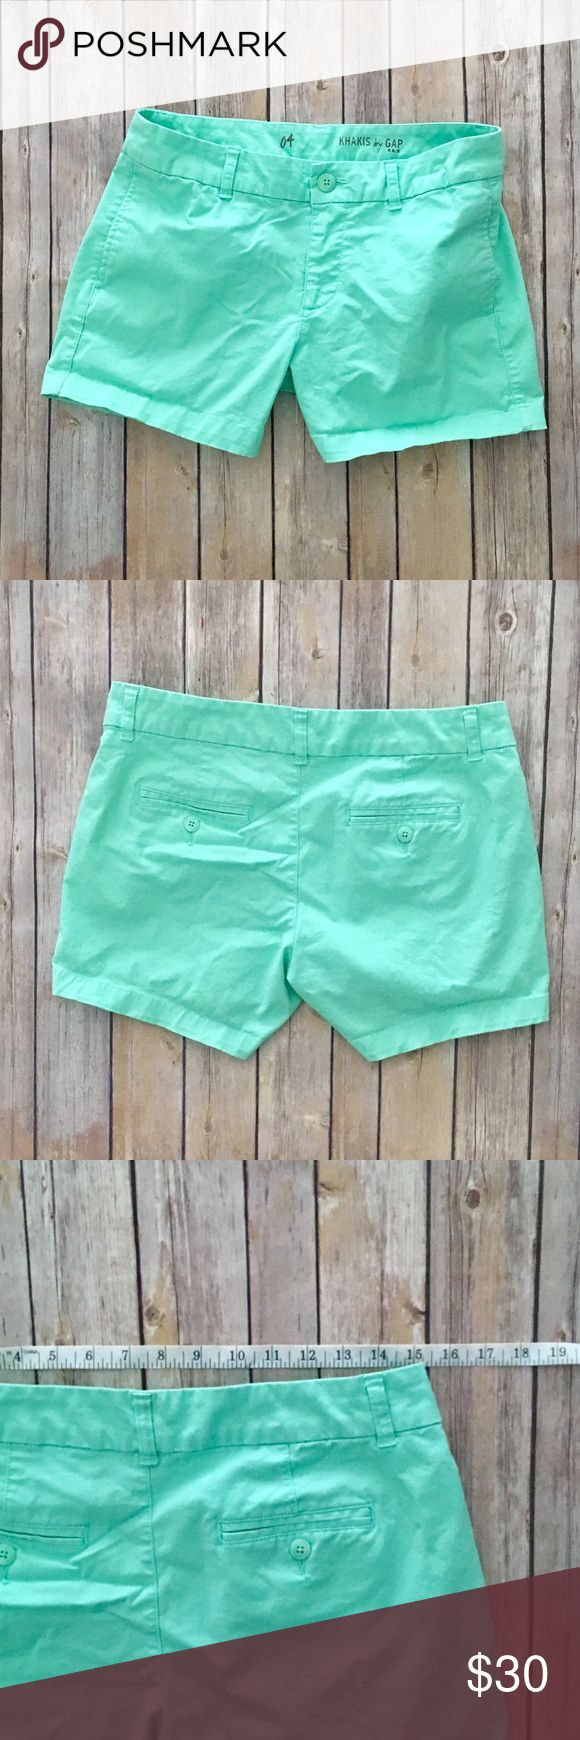 GAP Mint Green Shorts These Gap shorts are mint green khaki.  Size 4, measures approximately 15.25 inches across waist and have a 4 inch inseam.   Front hand pockets and back slit button pockets.  EUC. No holes, rips, wear or stains.   Bundle discount in my closet💕 GAP Shorts